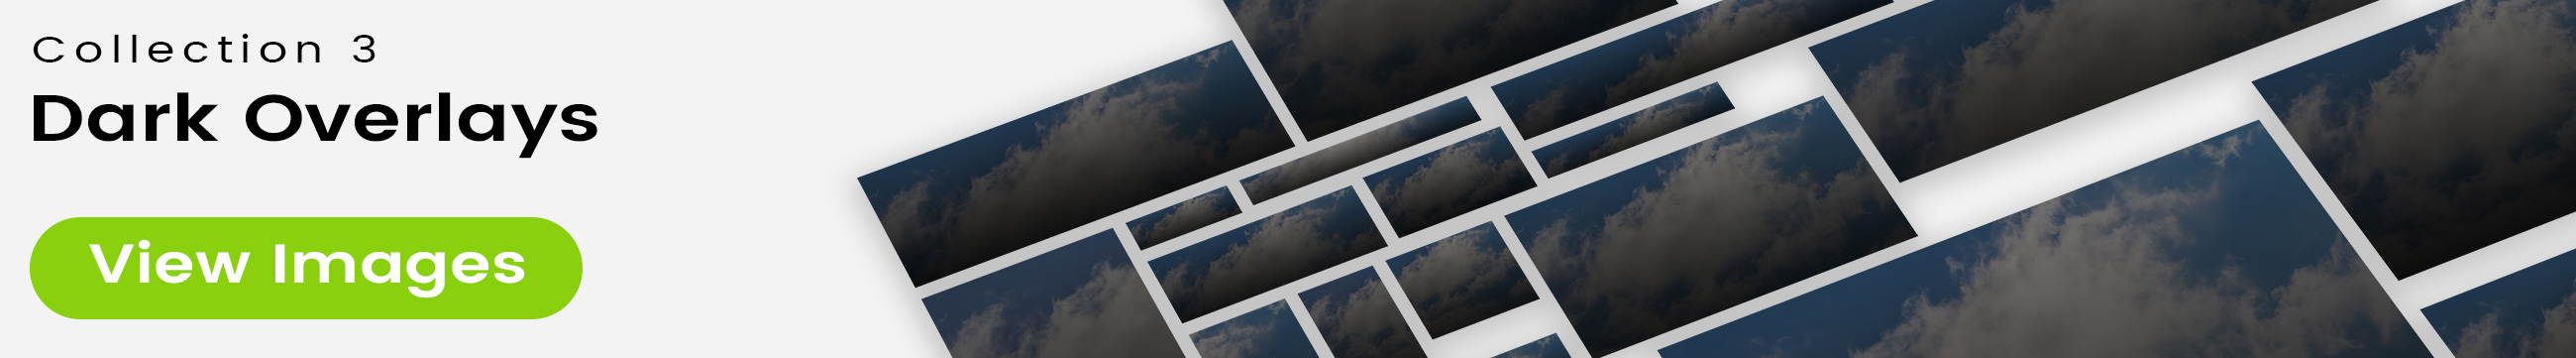 See 25 bonus images included with clouds stock image 9465. Collection 3 of 4 features a dark overlay design.